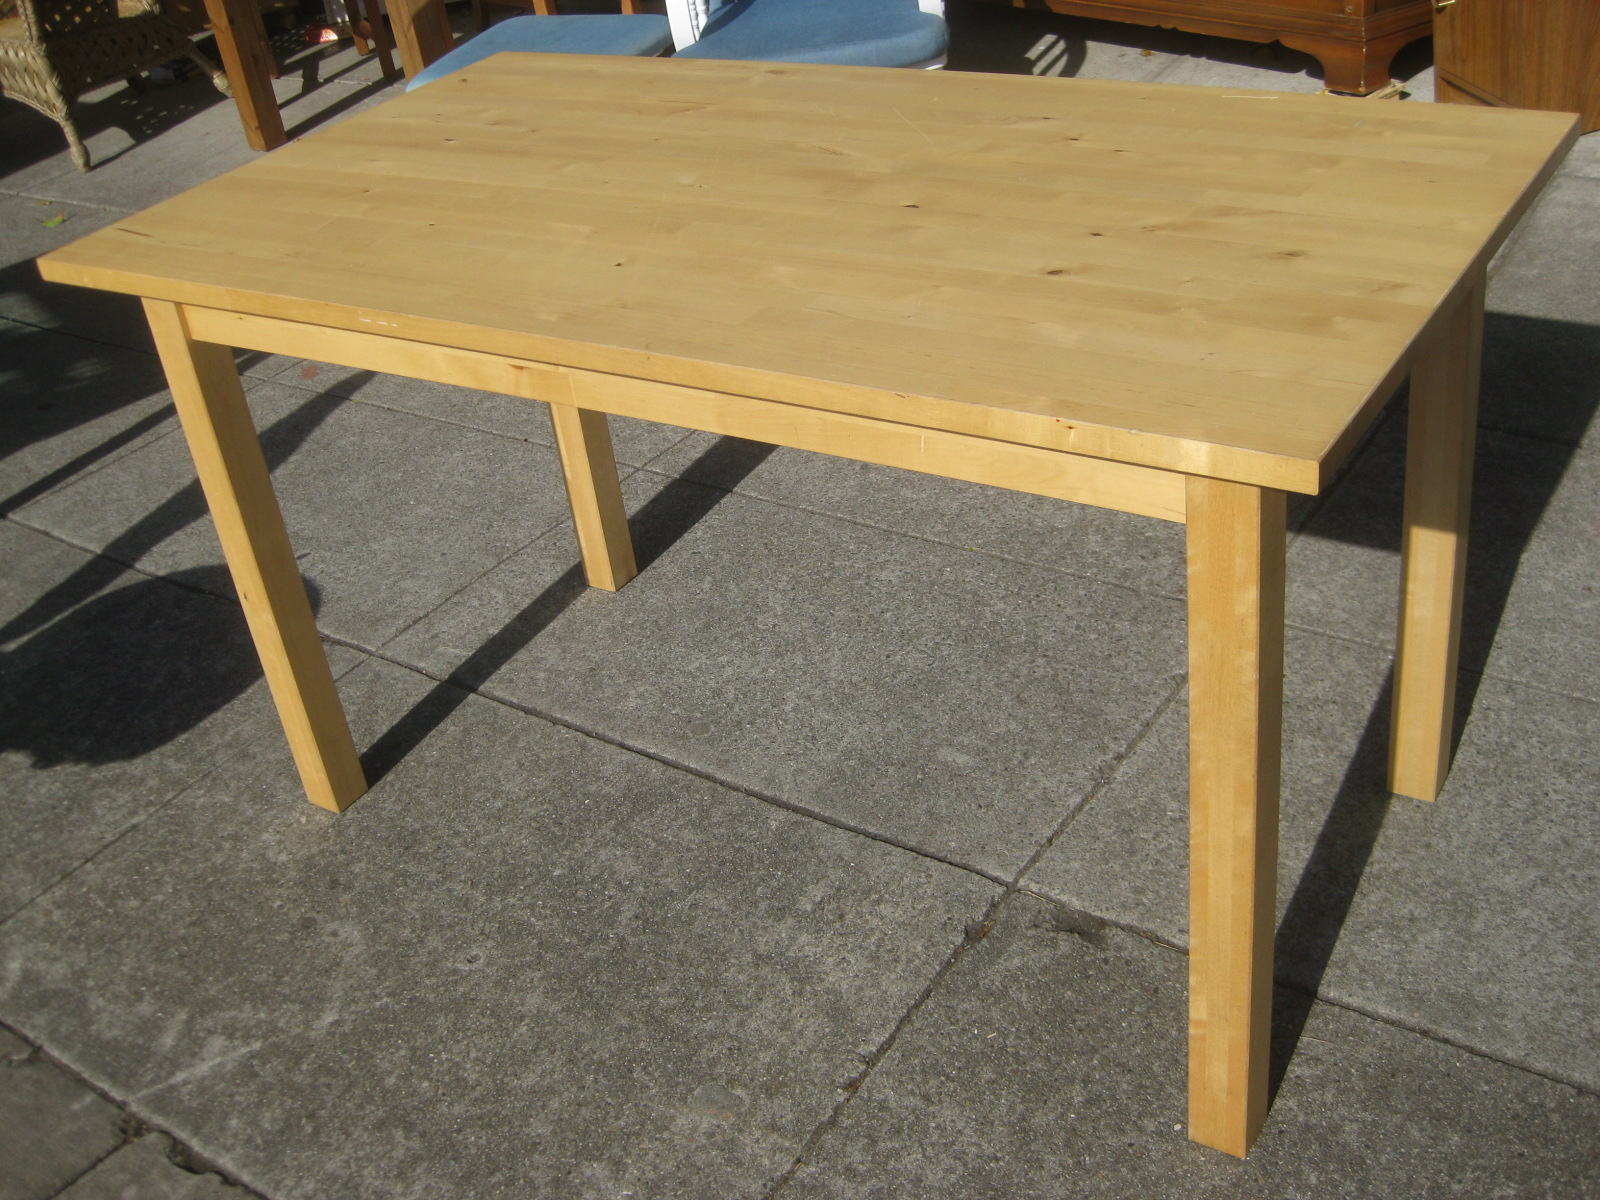 Dining table furniture ikea birch dining table - Birch kitchen table ...